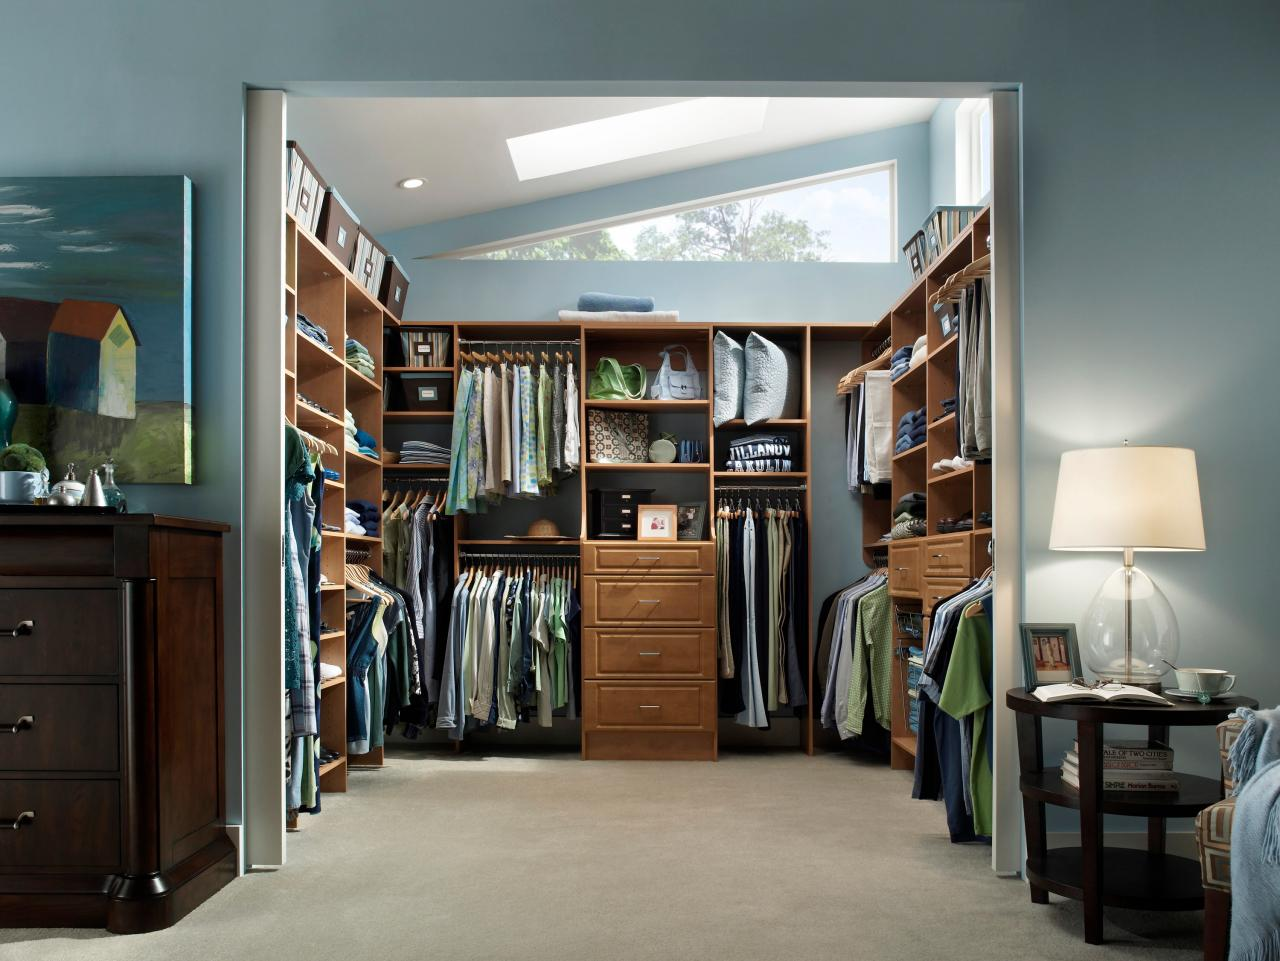 walkin closet best walk in closet designs pictures 27 in minimalist design room with walk SCNMXVL